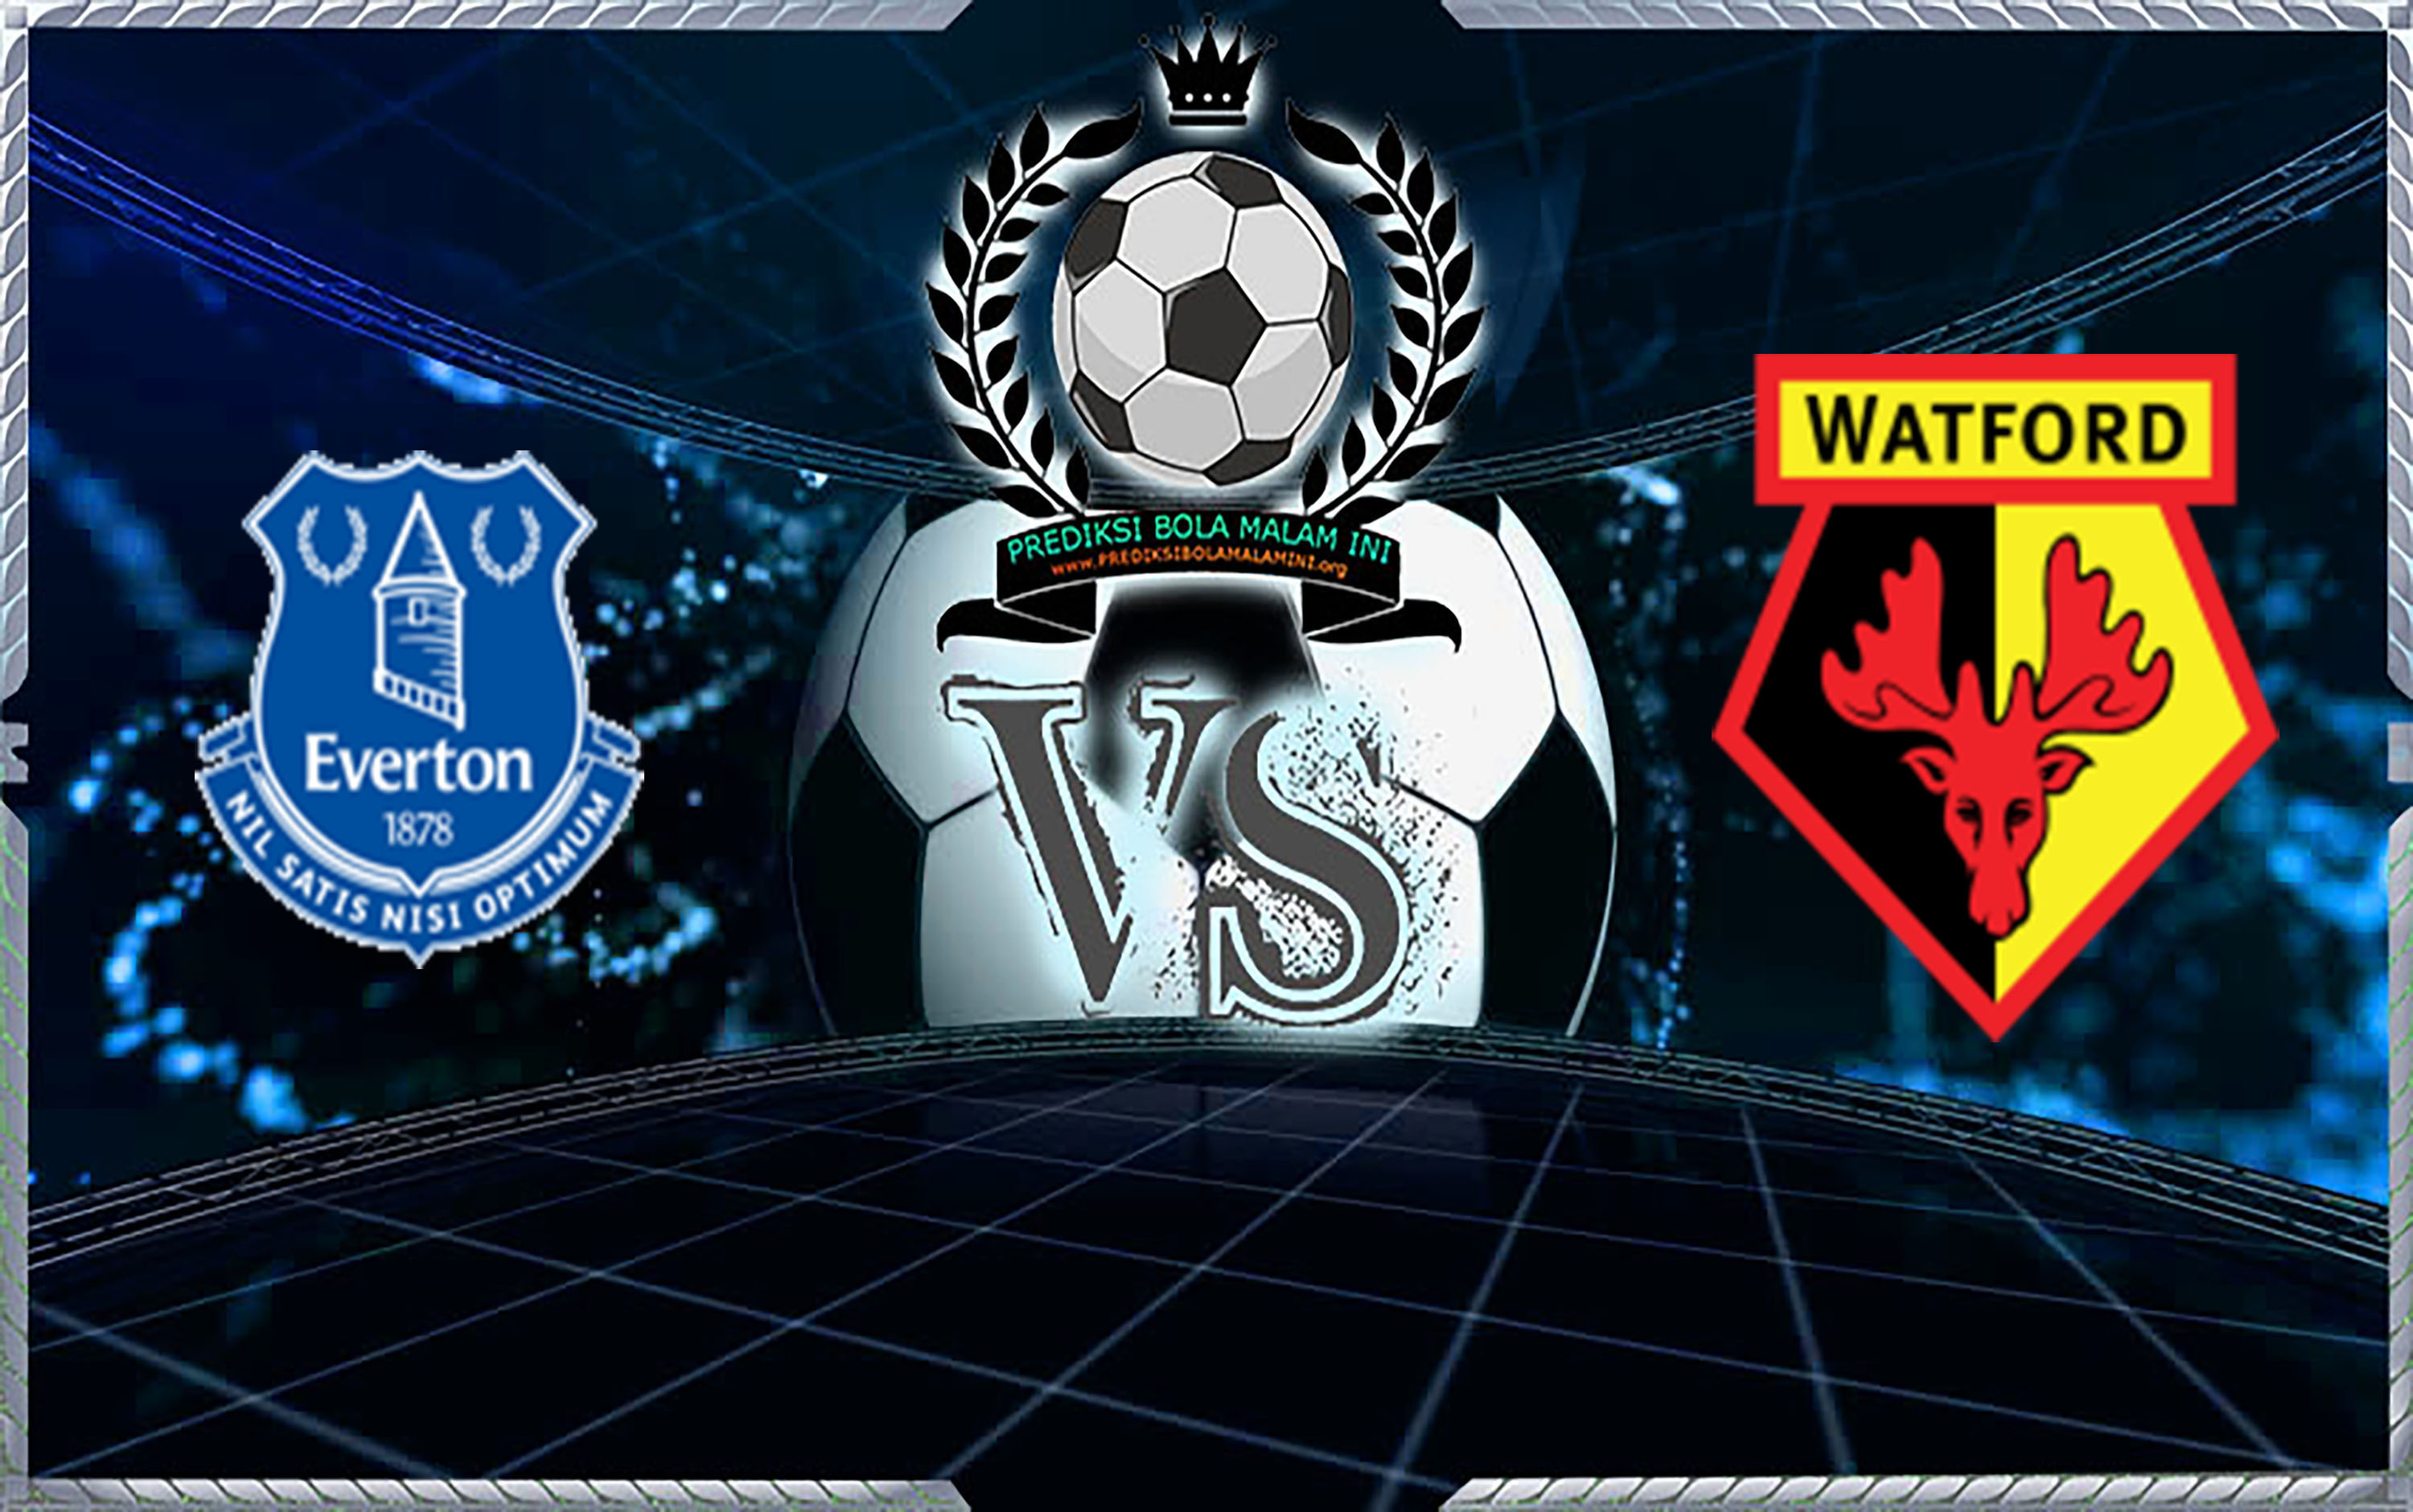 Memprediksi Everton Vs Watford 11 Desember 2018